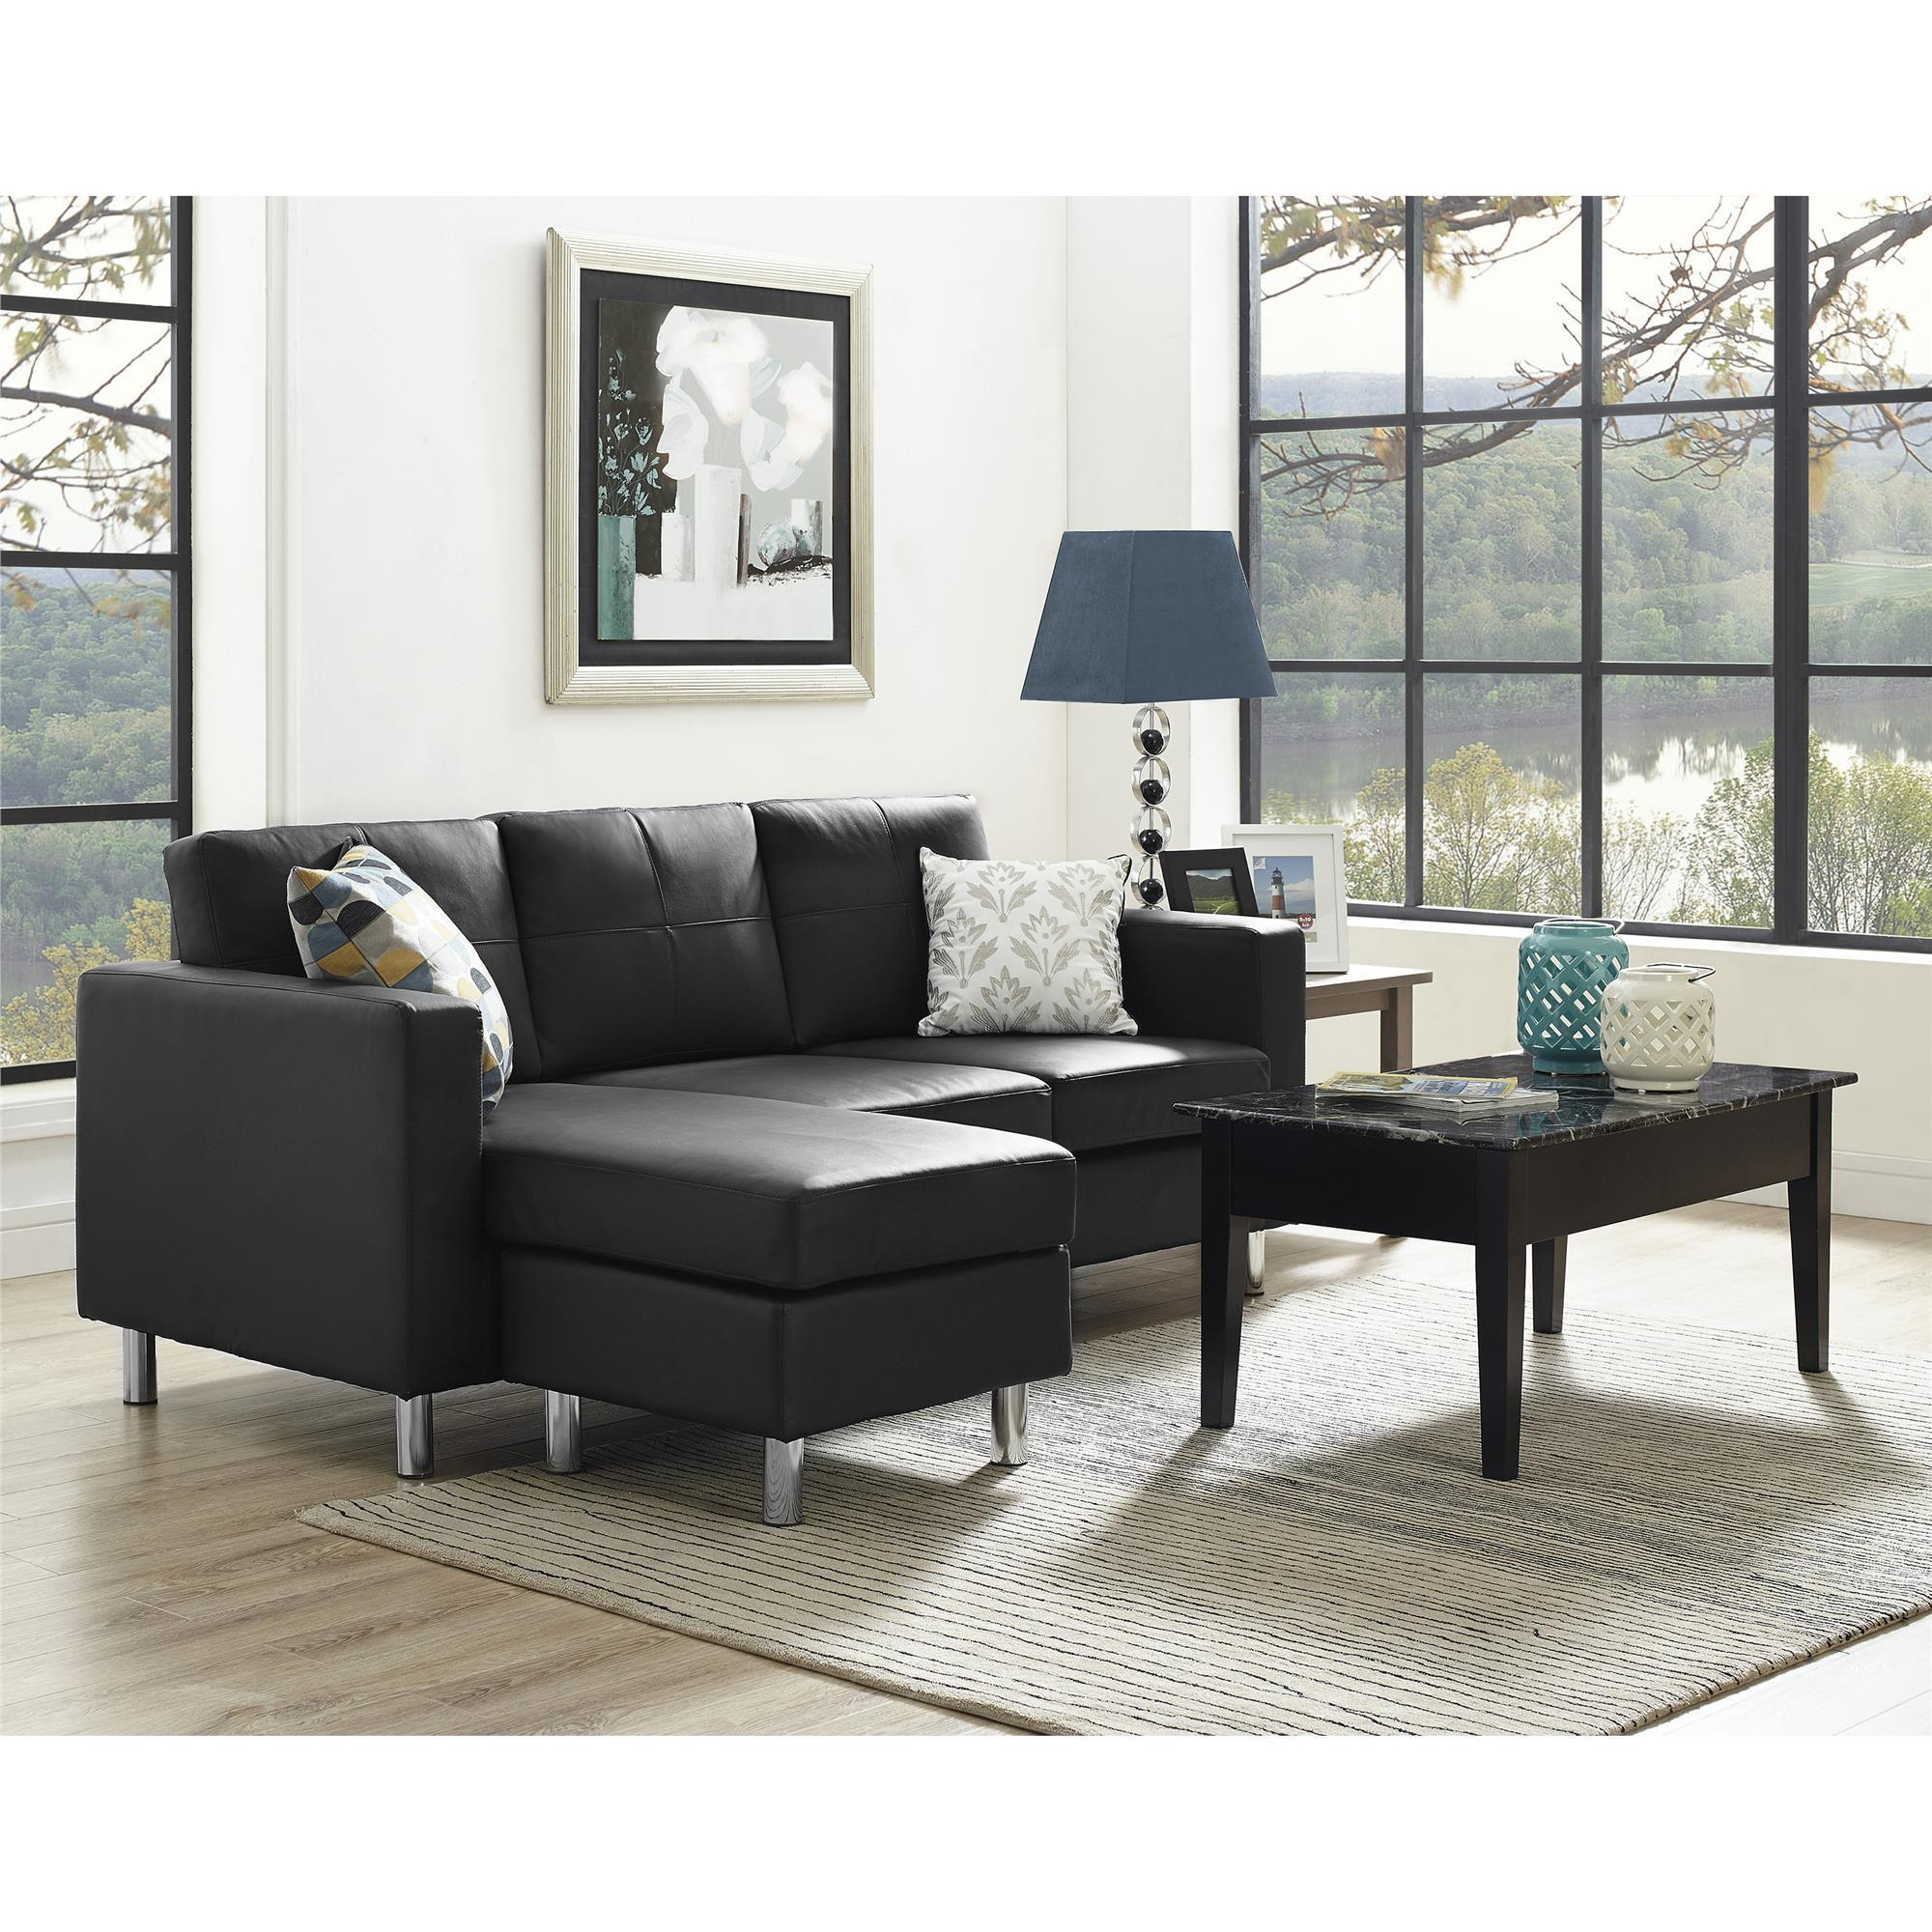 Dorel Living Small Es Black Faux Leather Configurable Sectional Sofa Free Shipping Today 10355256